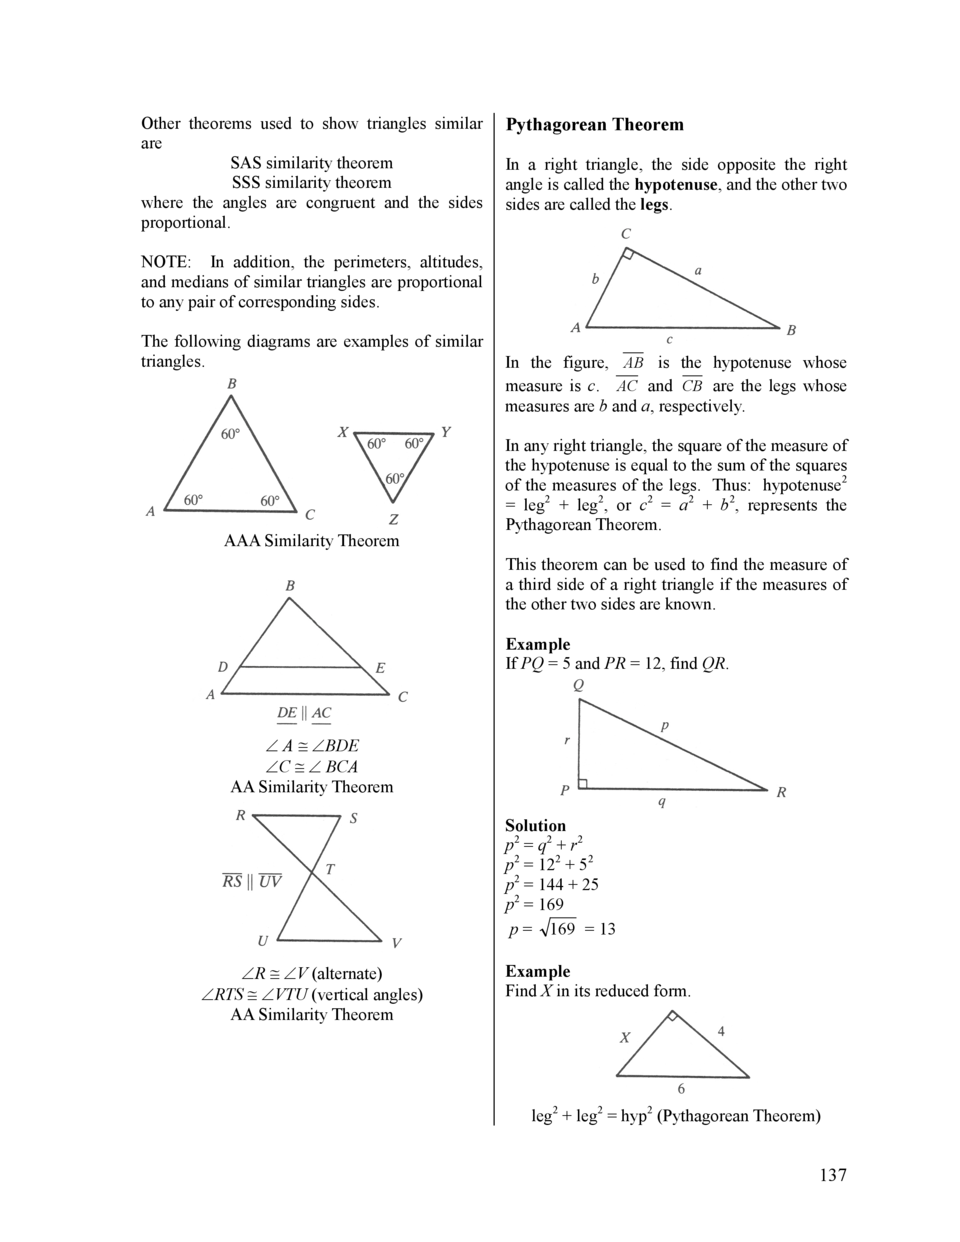 Other theorems used to show triangles similar are SAS similarity theorem SSS similarity theorem where the angles are congr...